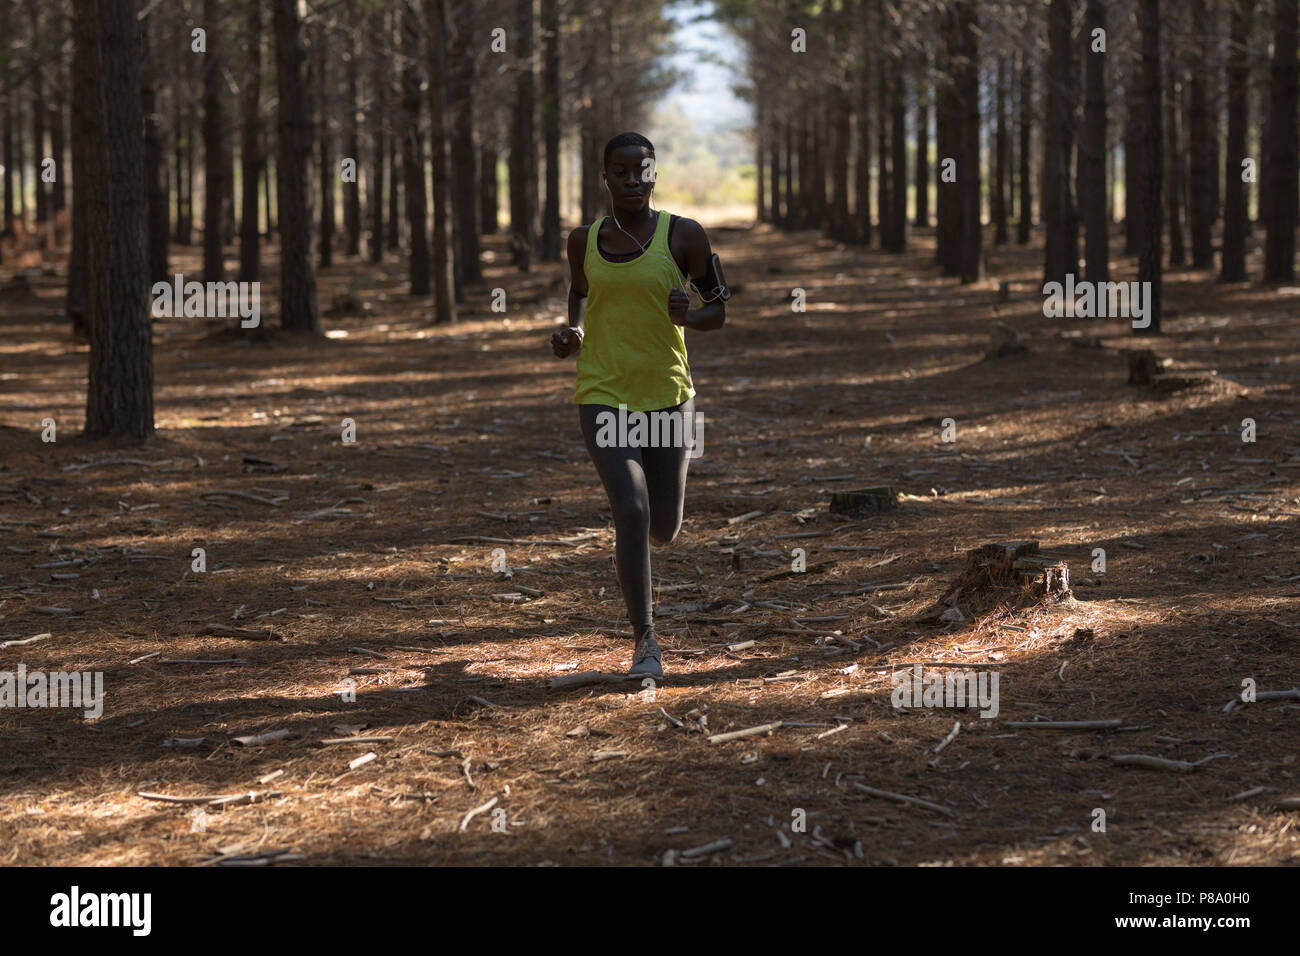 Female athlete jogging in the forest - Stock Image